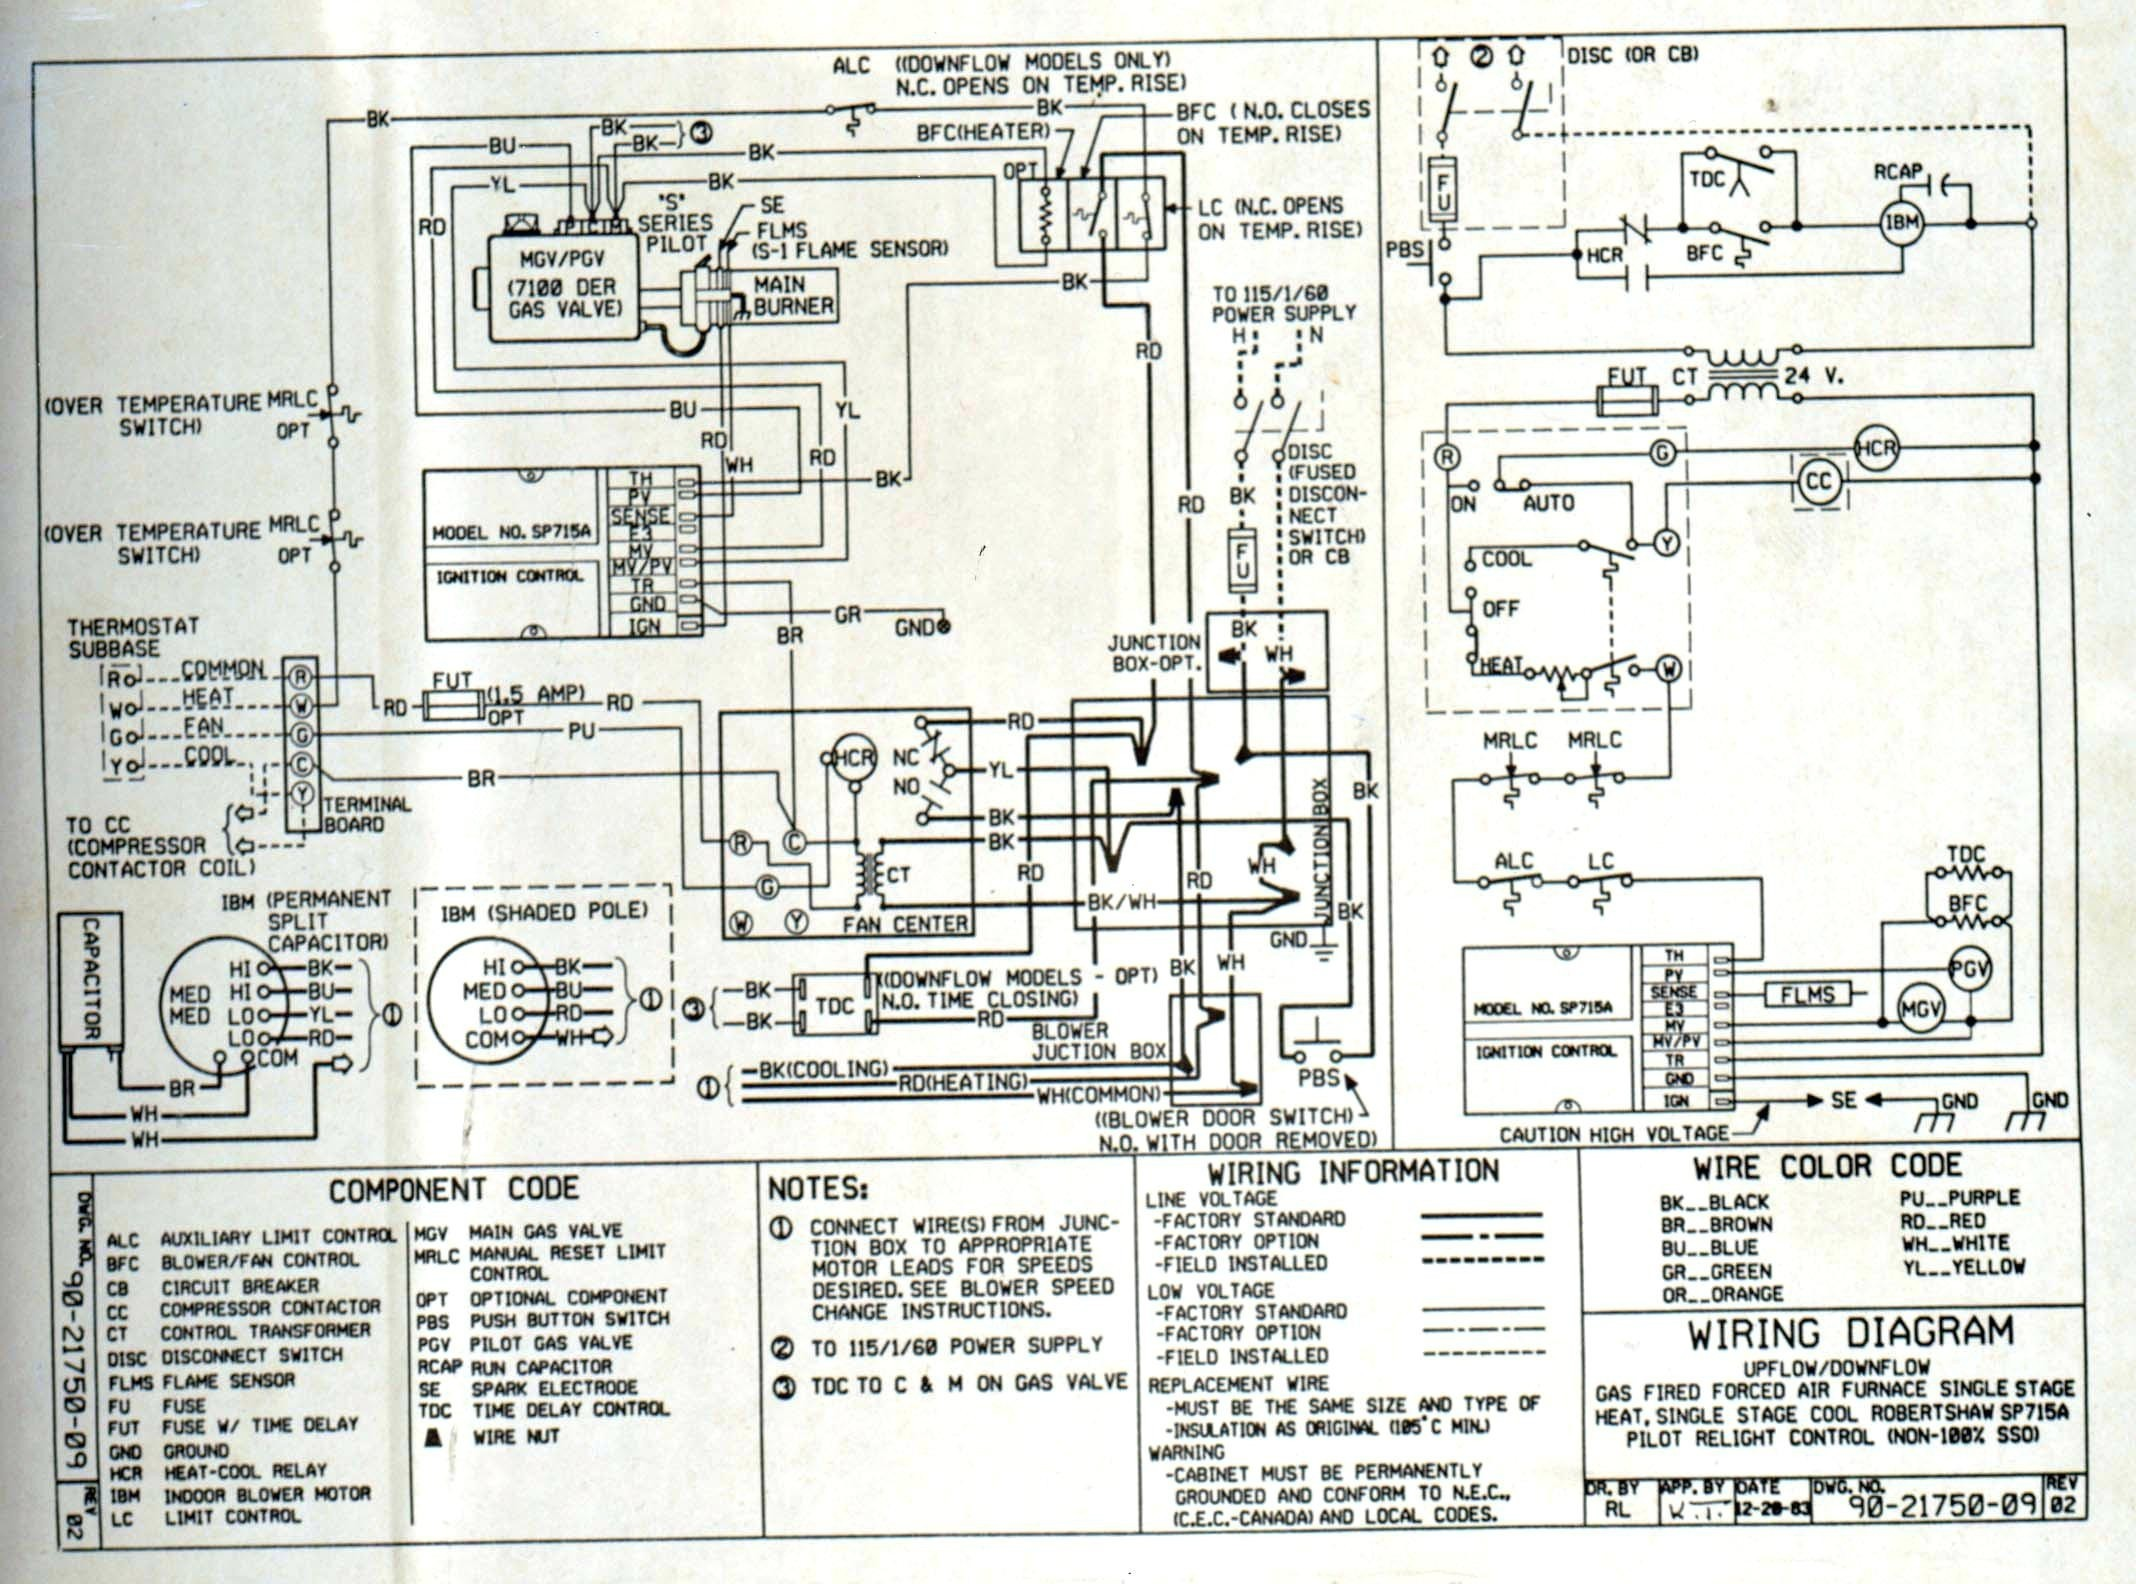 Wiring Diagram Package Ac New Package Air Conditioning Unit Wiring Diagram Save Carrier Electric